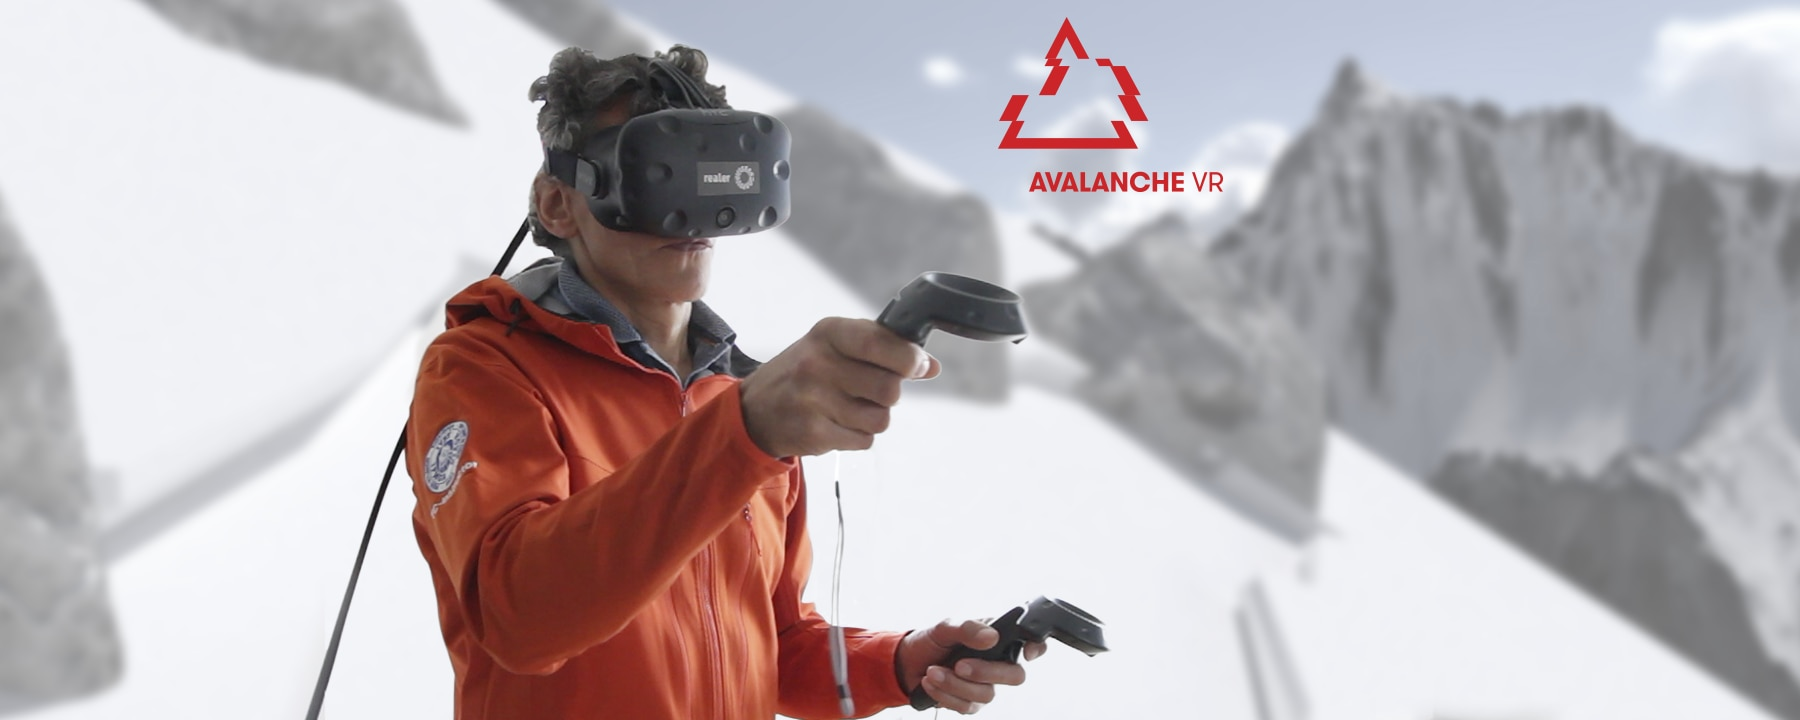 Photo of Avalanche VR per lo scialpinismo virtuale